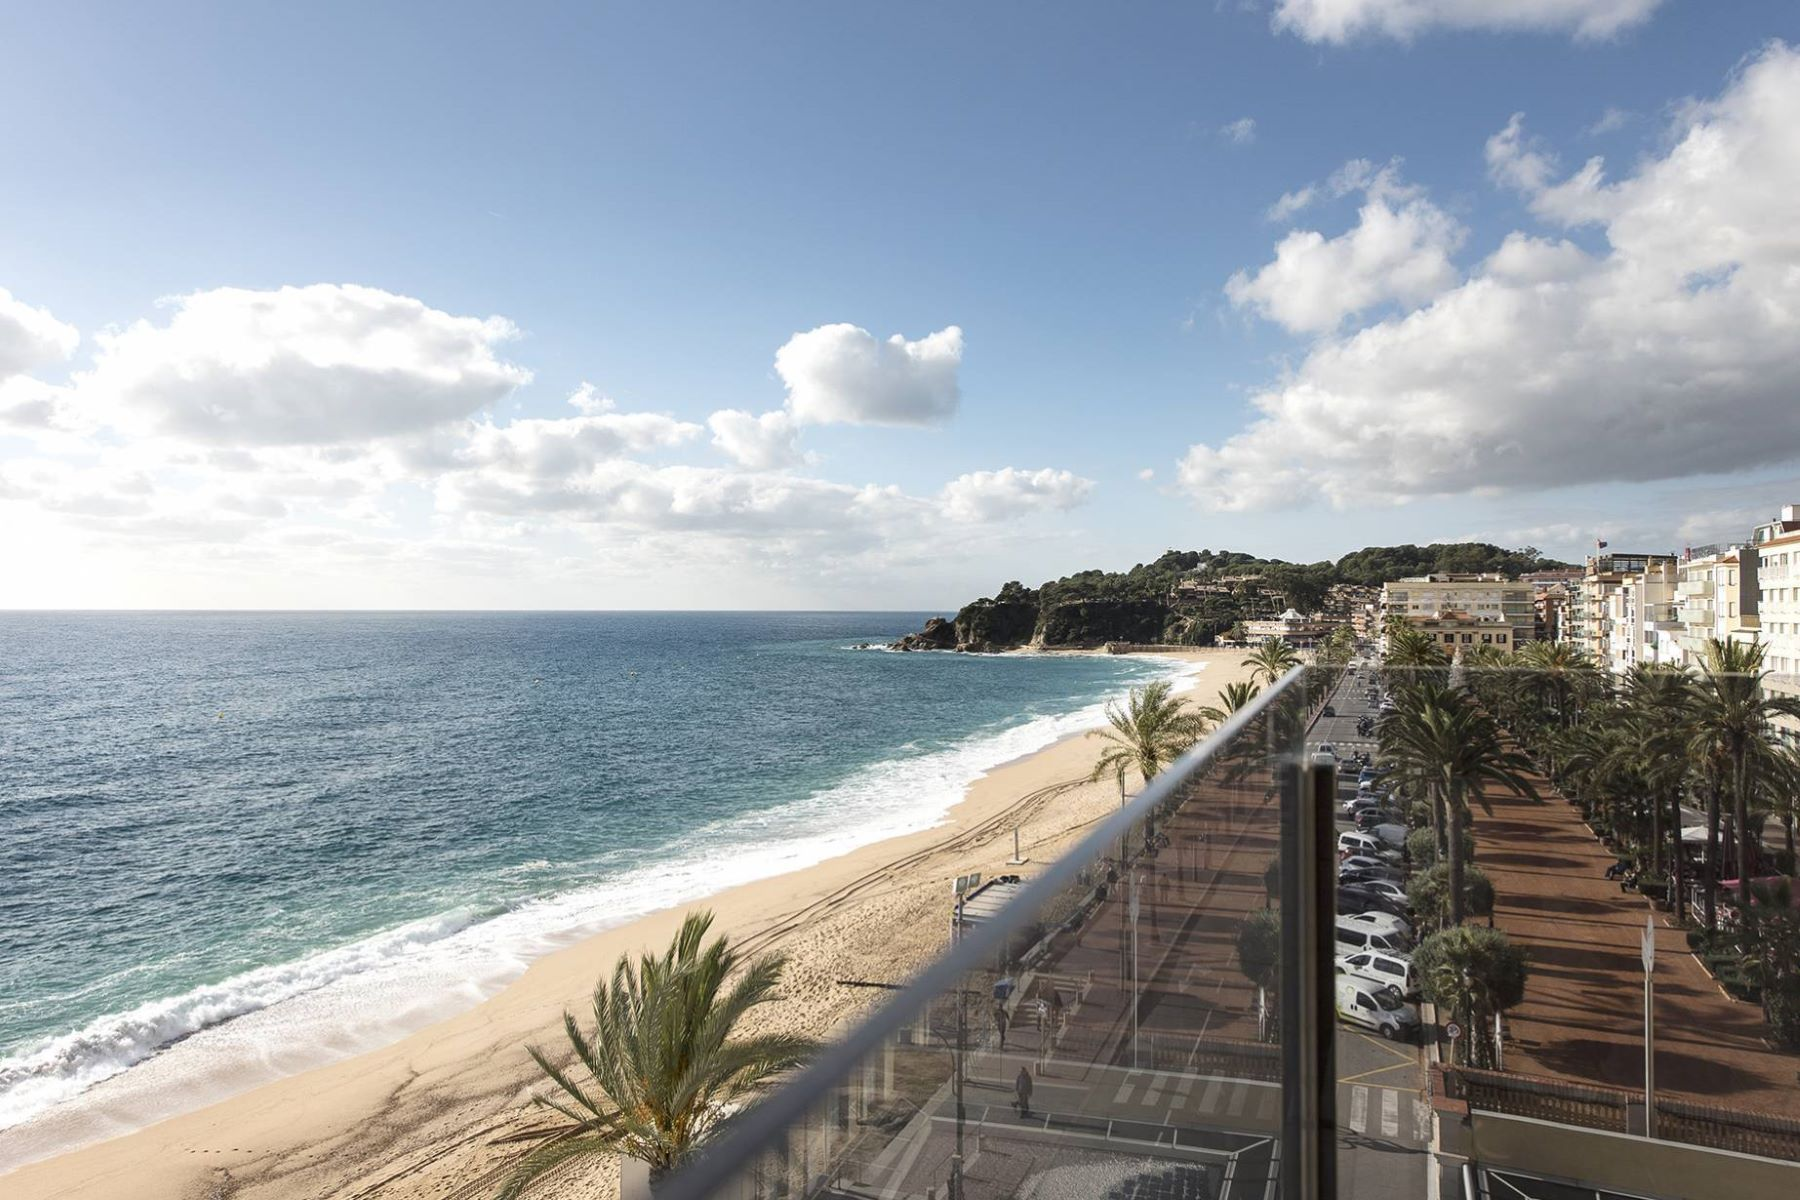 Apartment for Sale at Exclusive newly built apartment on the seafront Lloret De Mar, Costa Brava, 17310 Spain